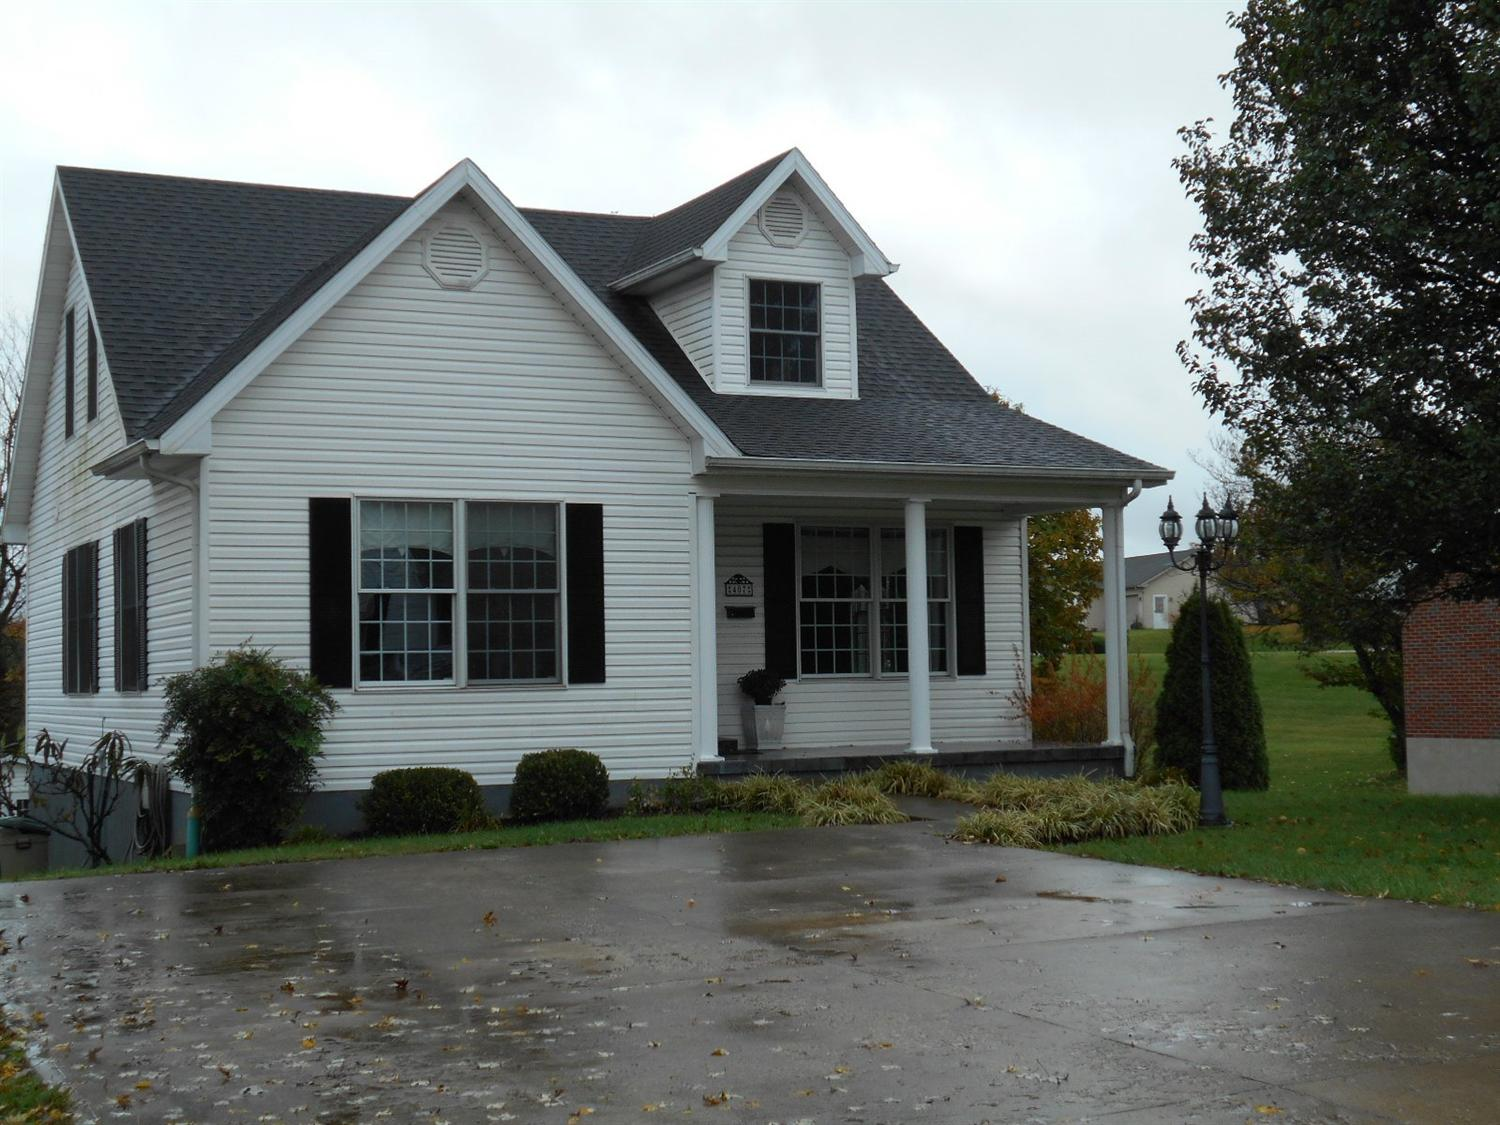 407 Nevada Ave, Mount Sterling, KY